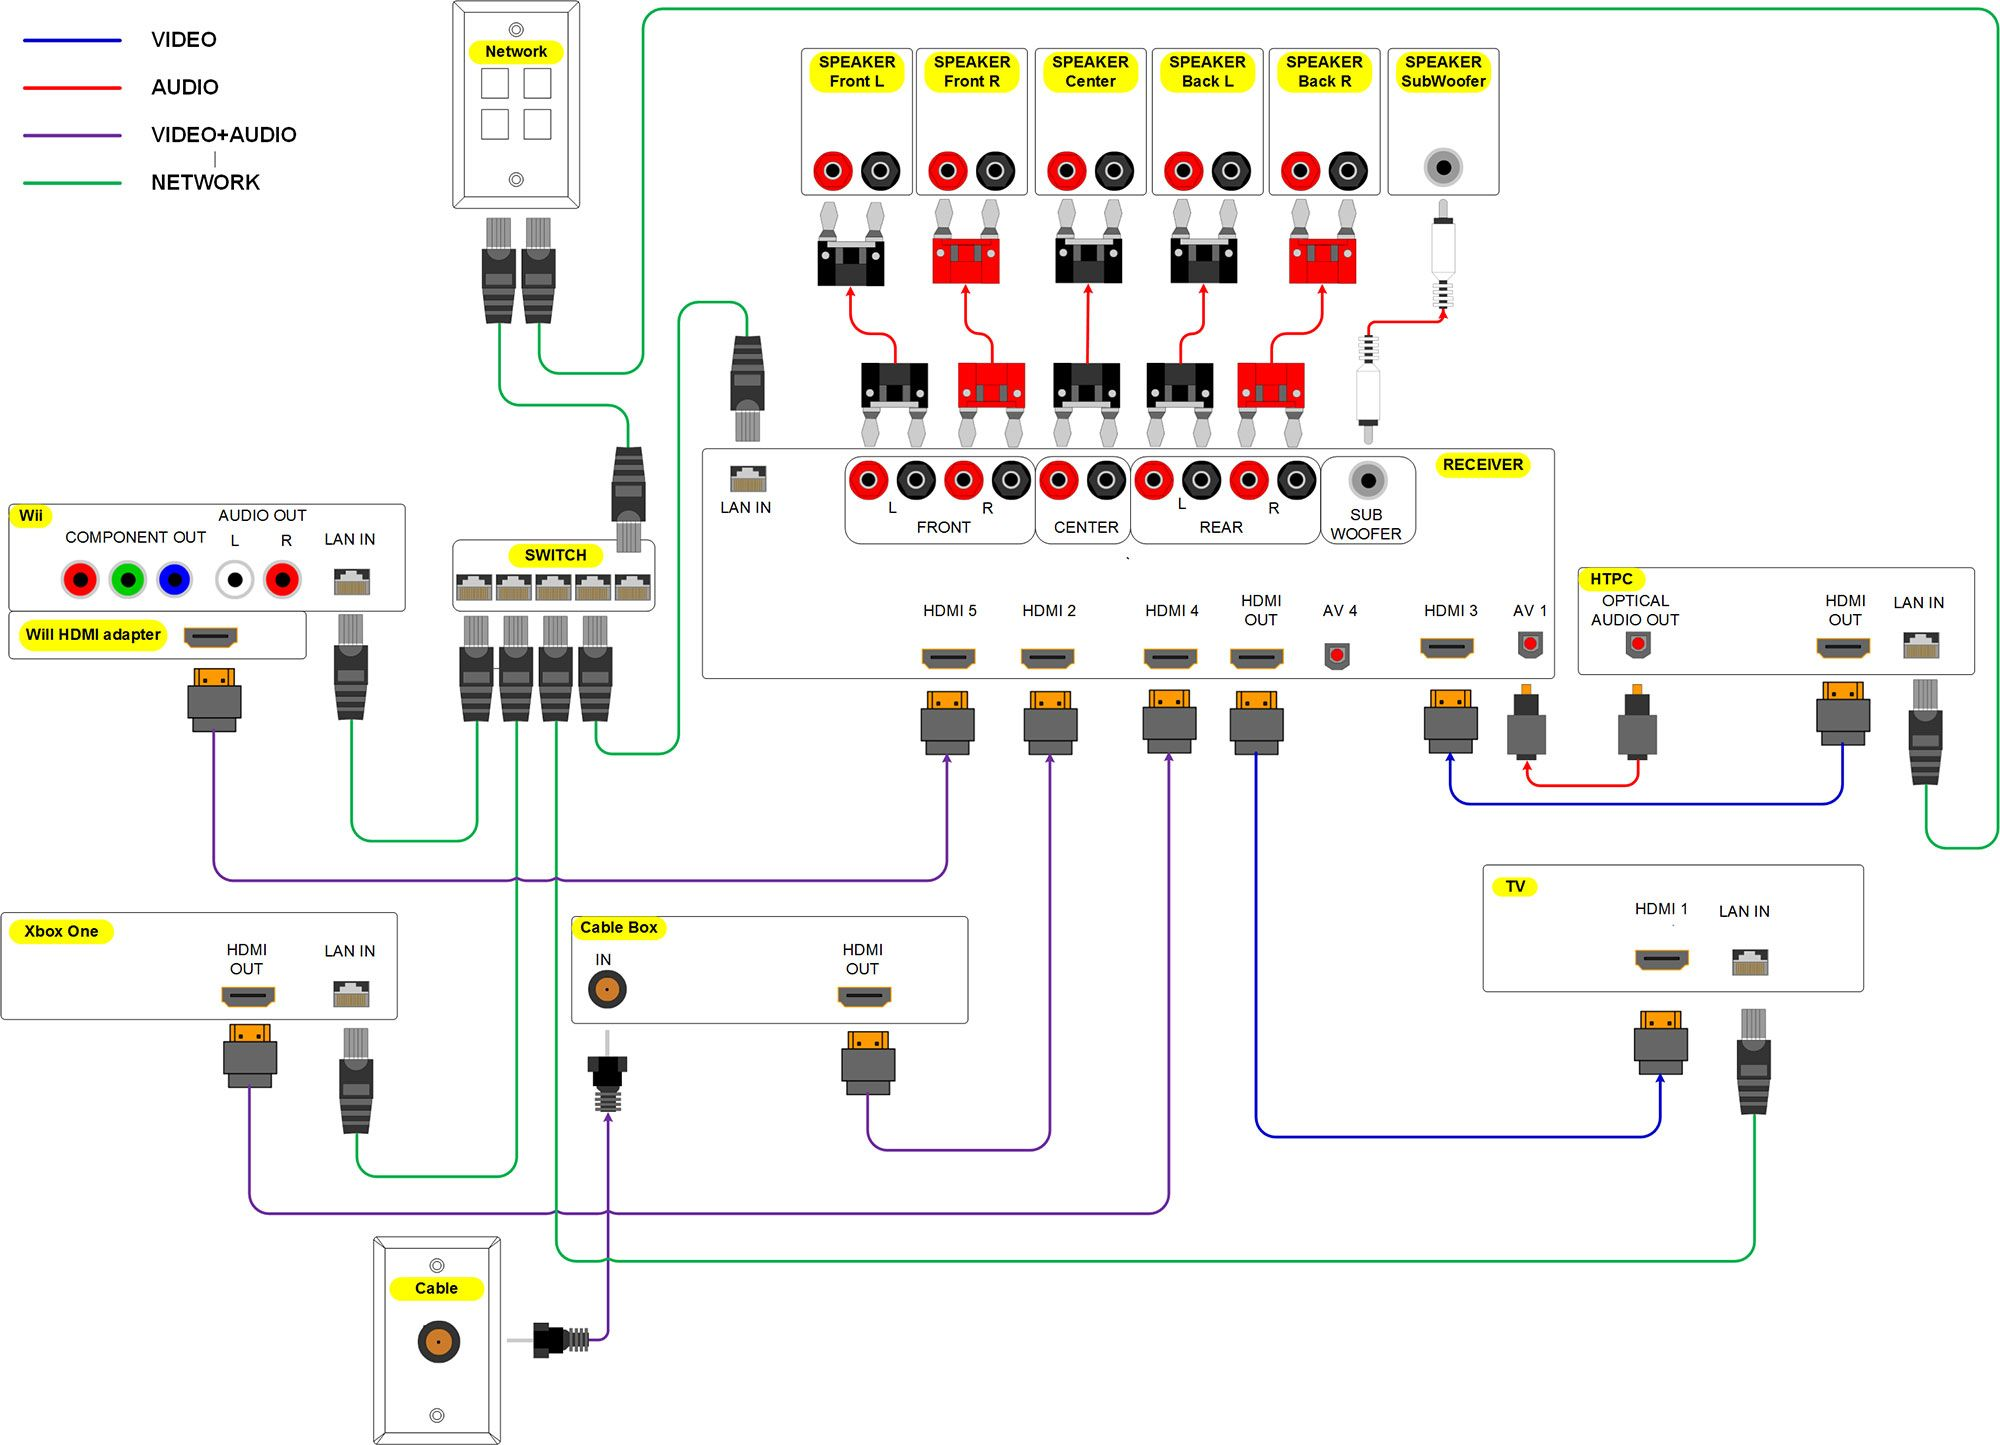 home theater wiring diagram (click it to see the big 2000 pixel wide speaker construction diagram home theater wiring diagram (click it to see the big 2000 pixel wide